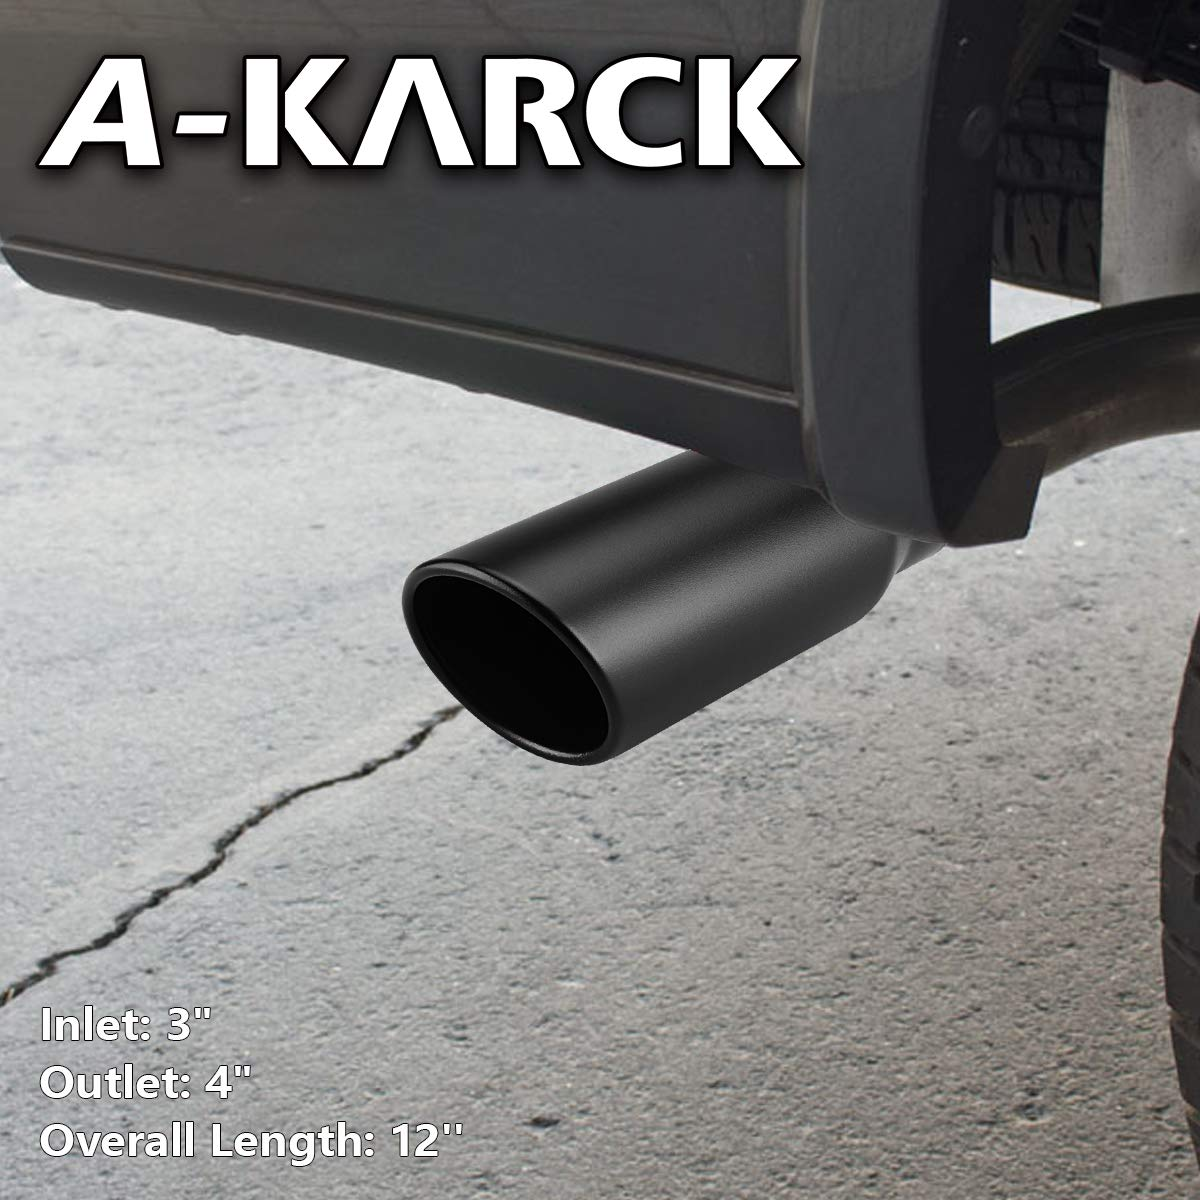 A-KARCK Exhaust Tip 3 Inch Inlet 3 Inlet 4 Outlet 12 Overall Length Clamp On Muffler Tip For Truck Tailpipe Rolled Angle Cut Design